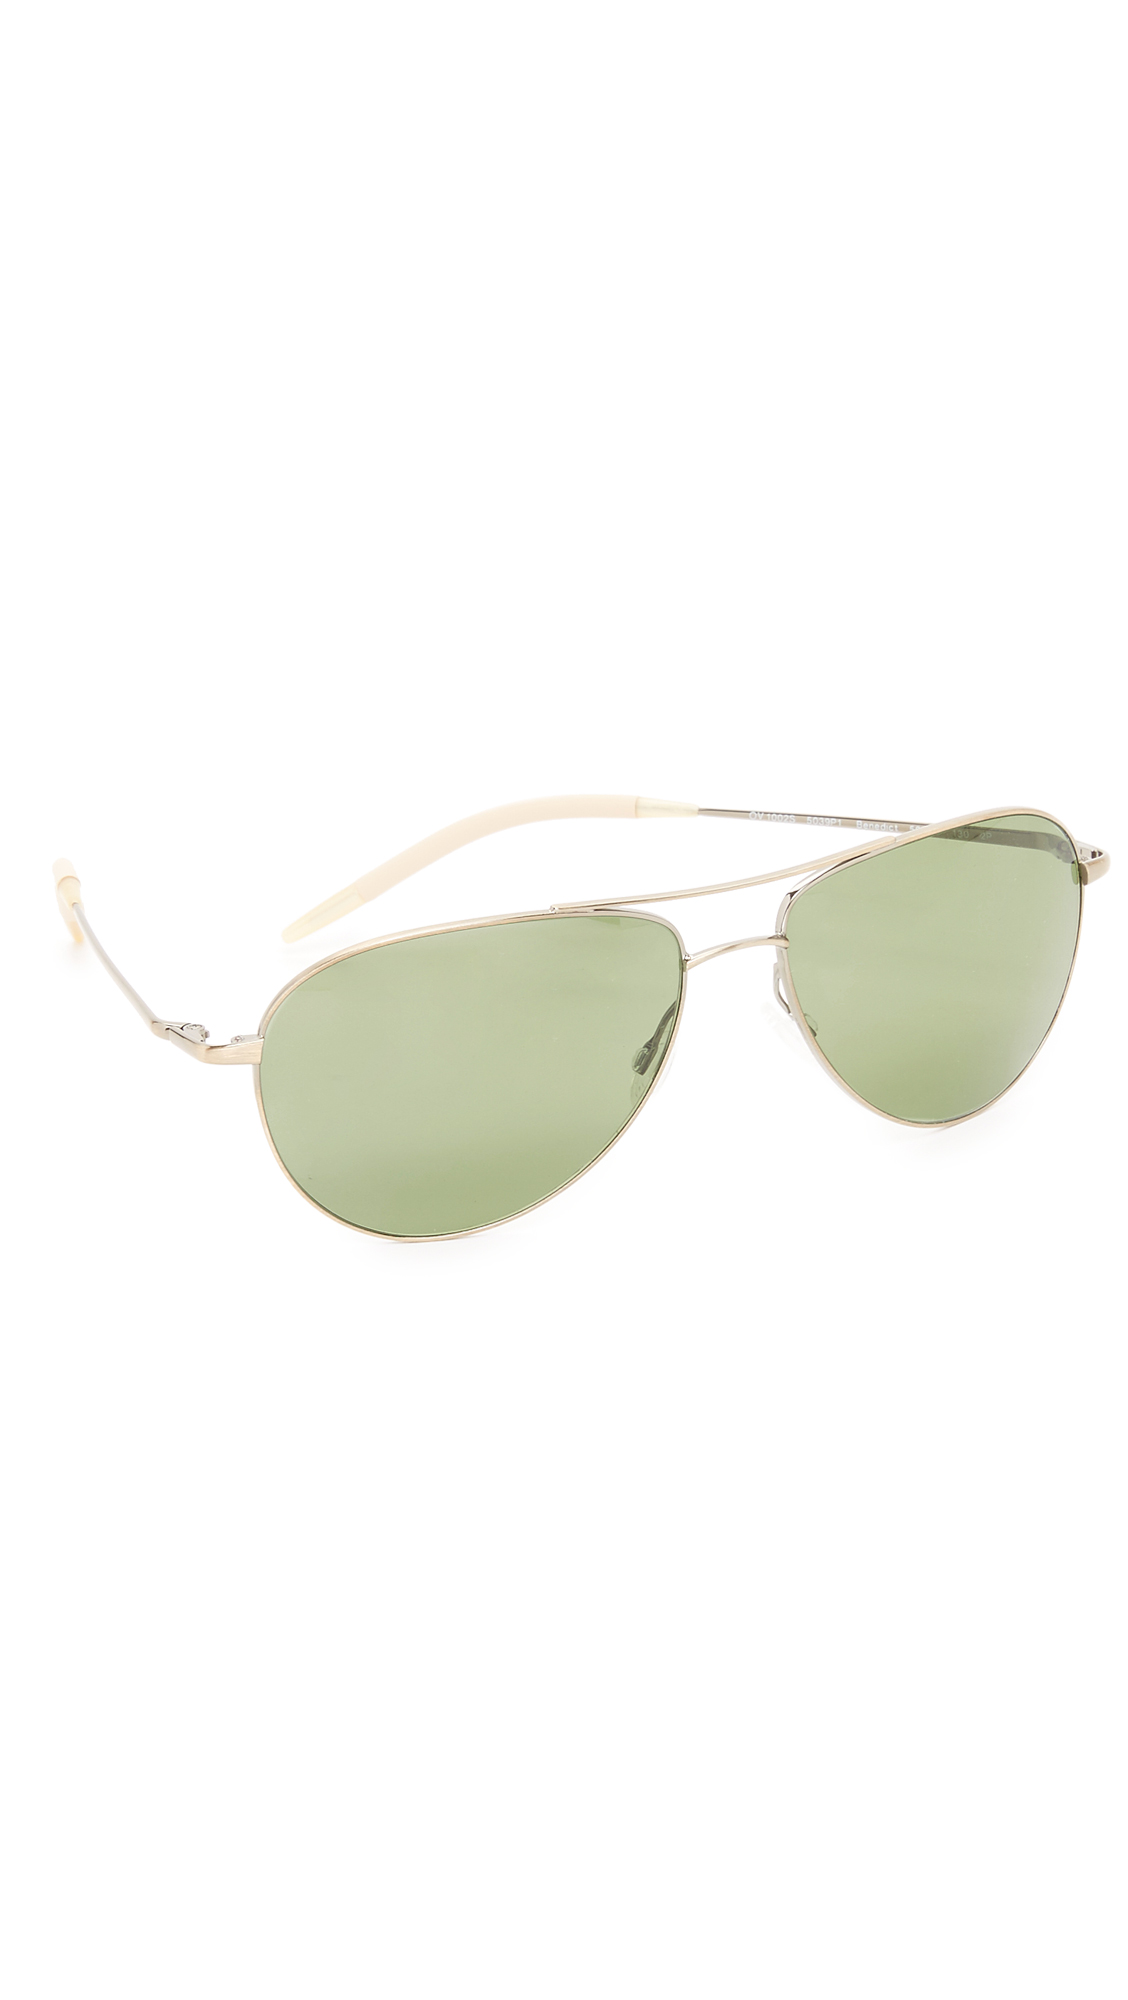 2f2a7f8a1ad Oliver Peoples Benedict Polarized Sunglasses In Antique Gold Jade Polar